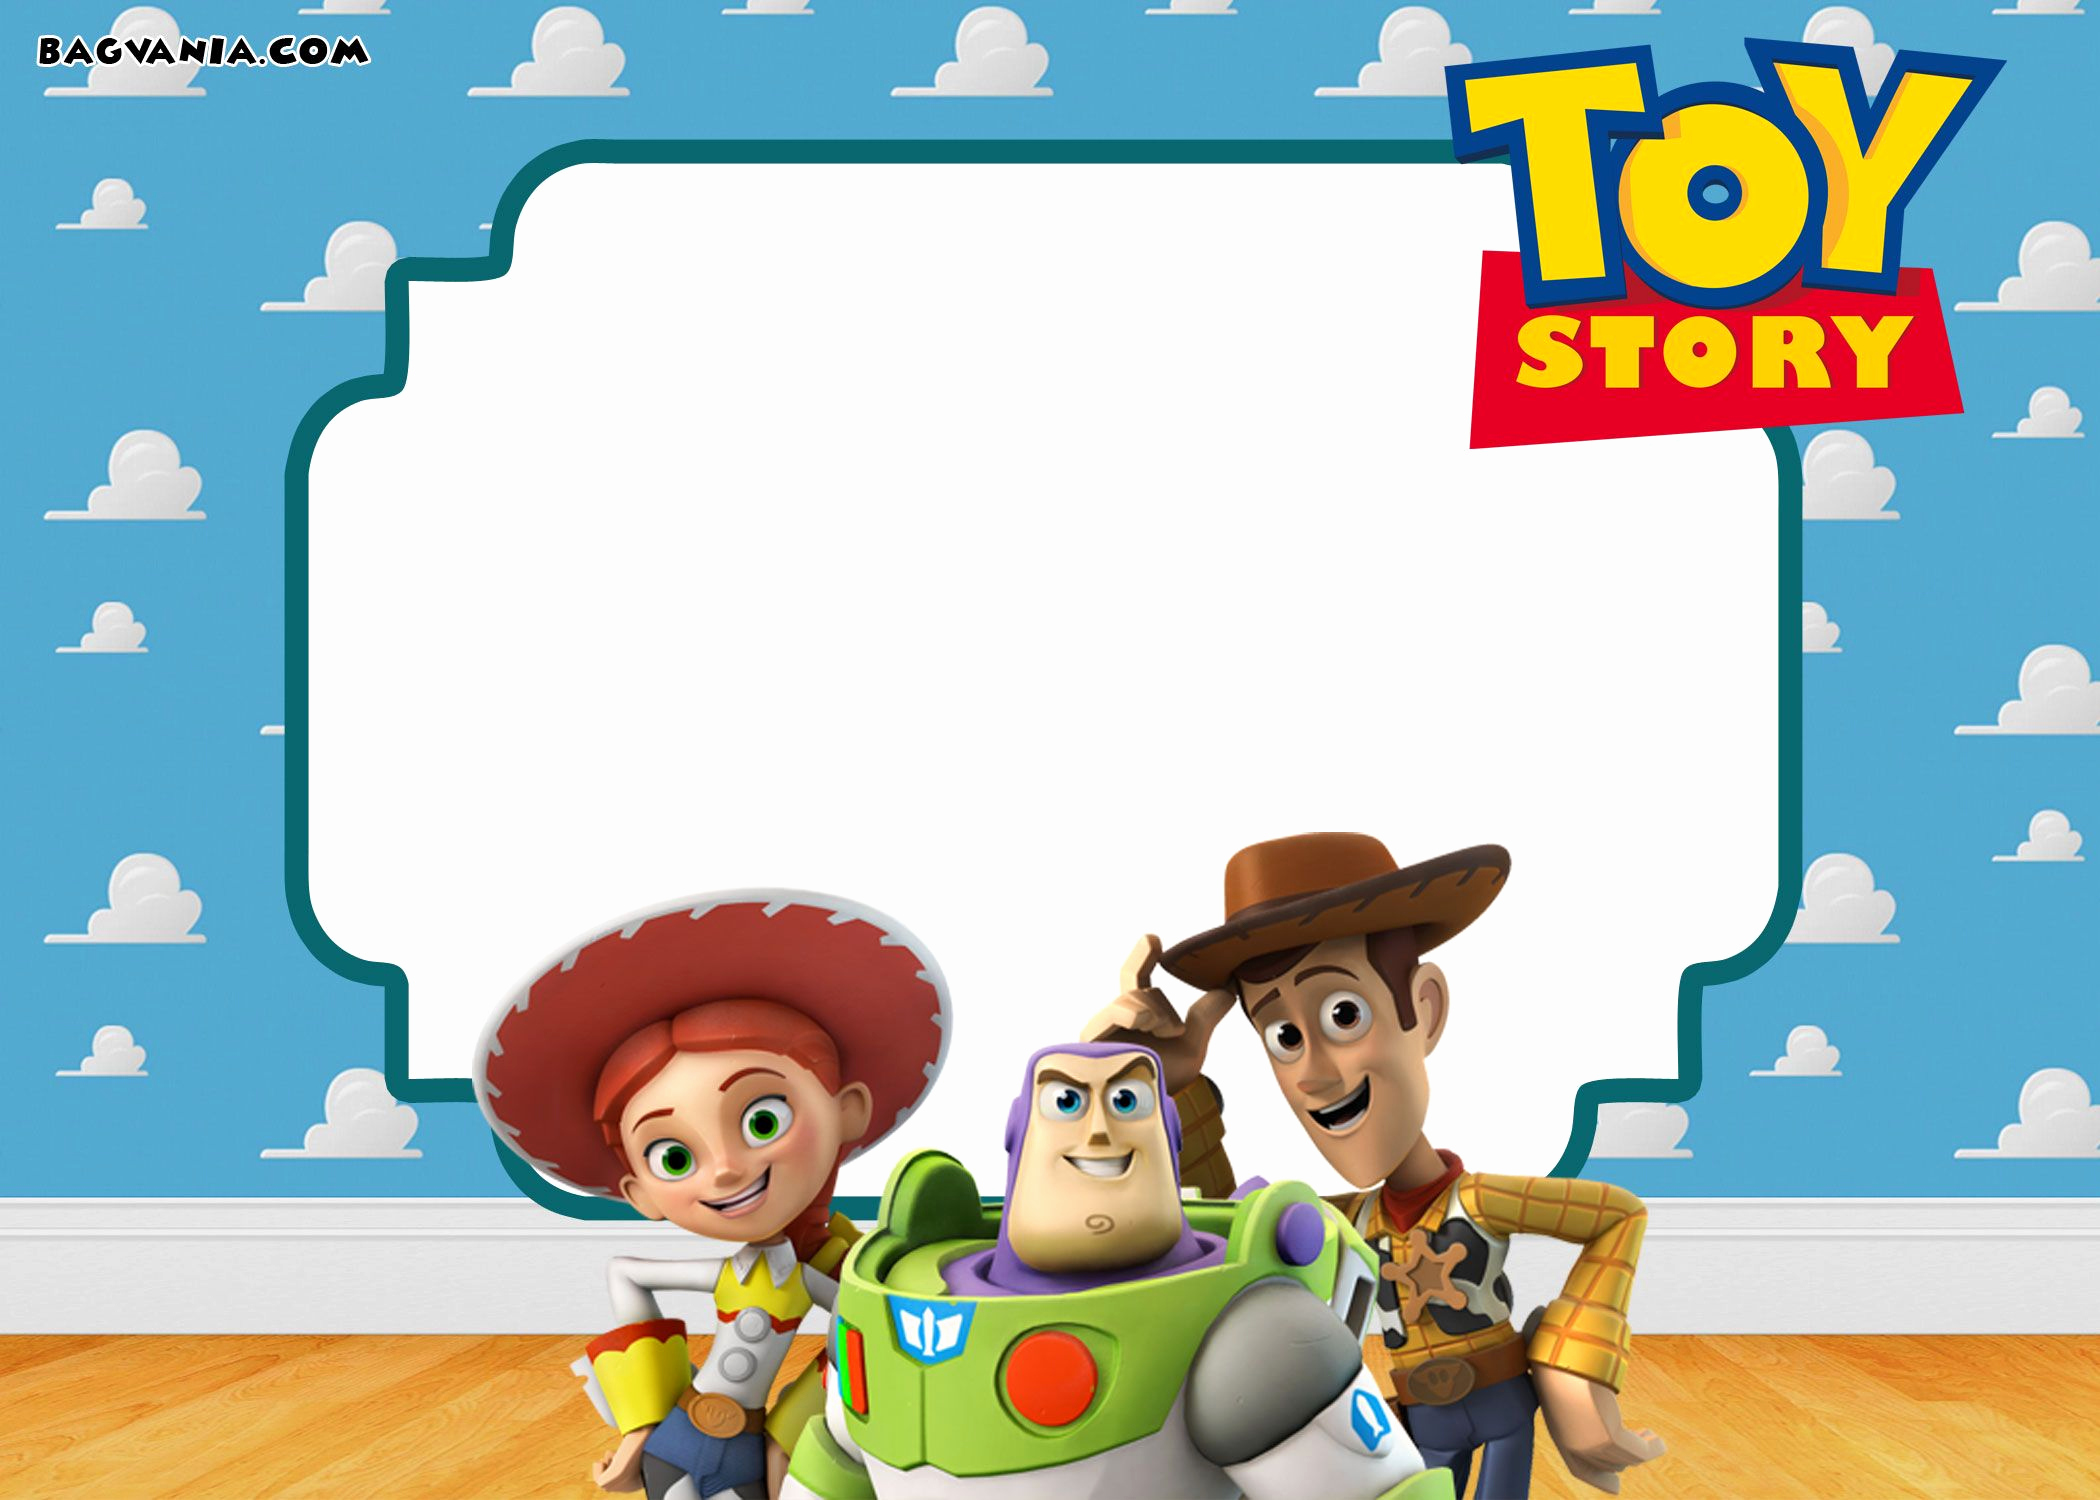 Free toy Story Invitation Template Inspirational Free Printable toy Story 3 Birthday Invitations